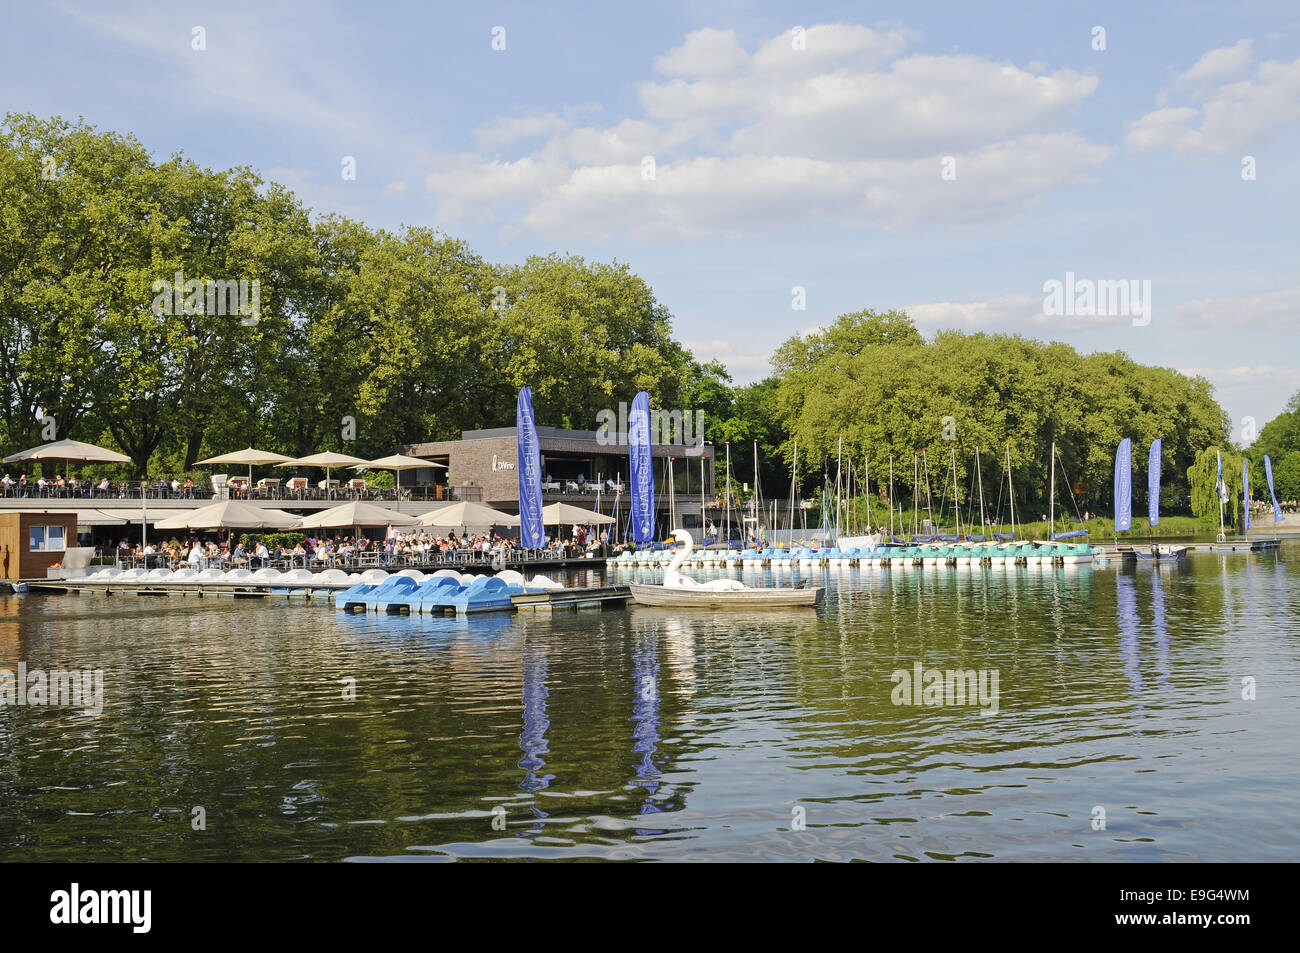 Aasee lake, Muenster, Germany Stock Photo